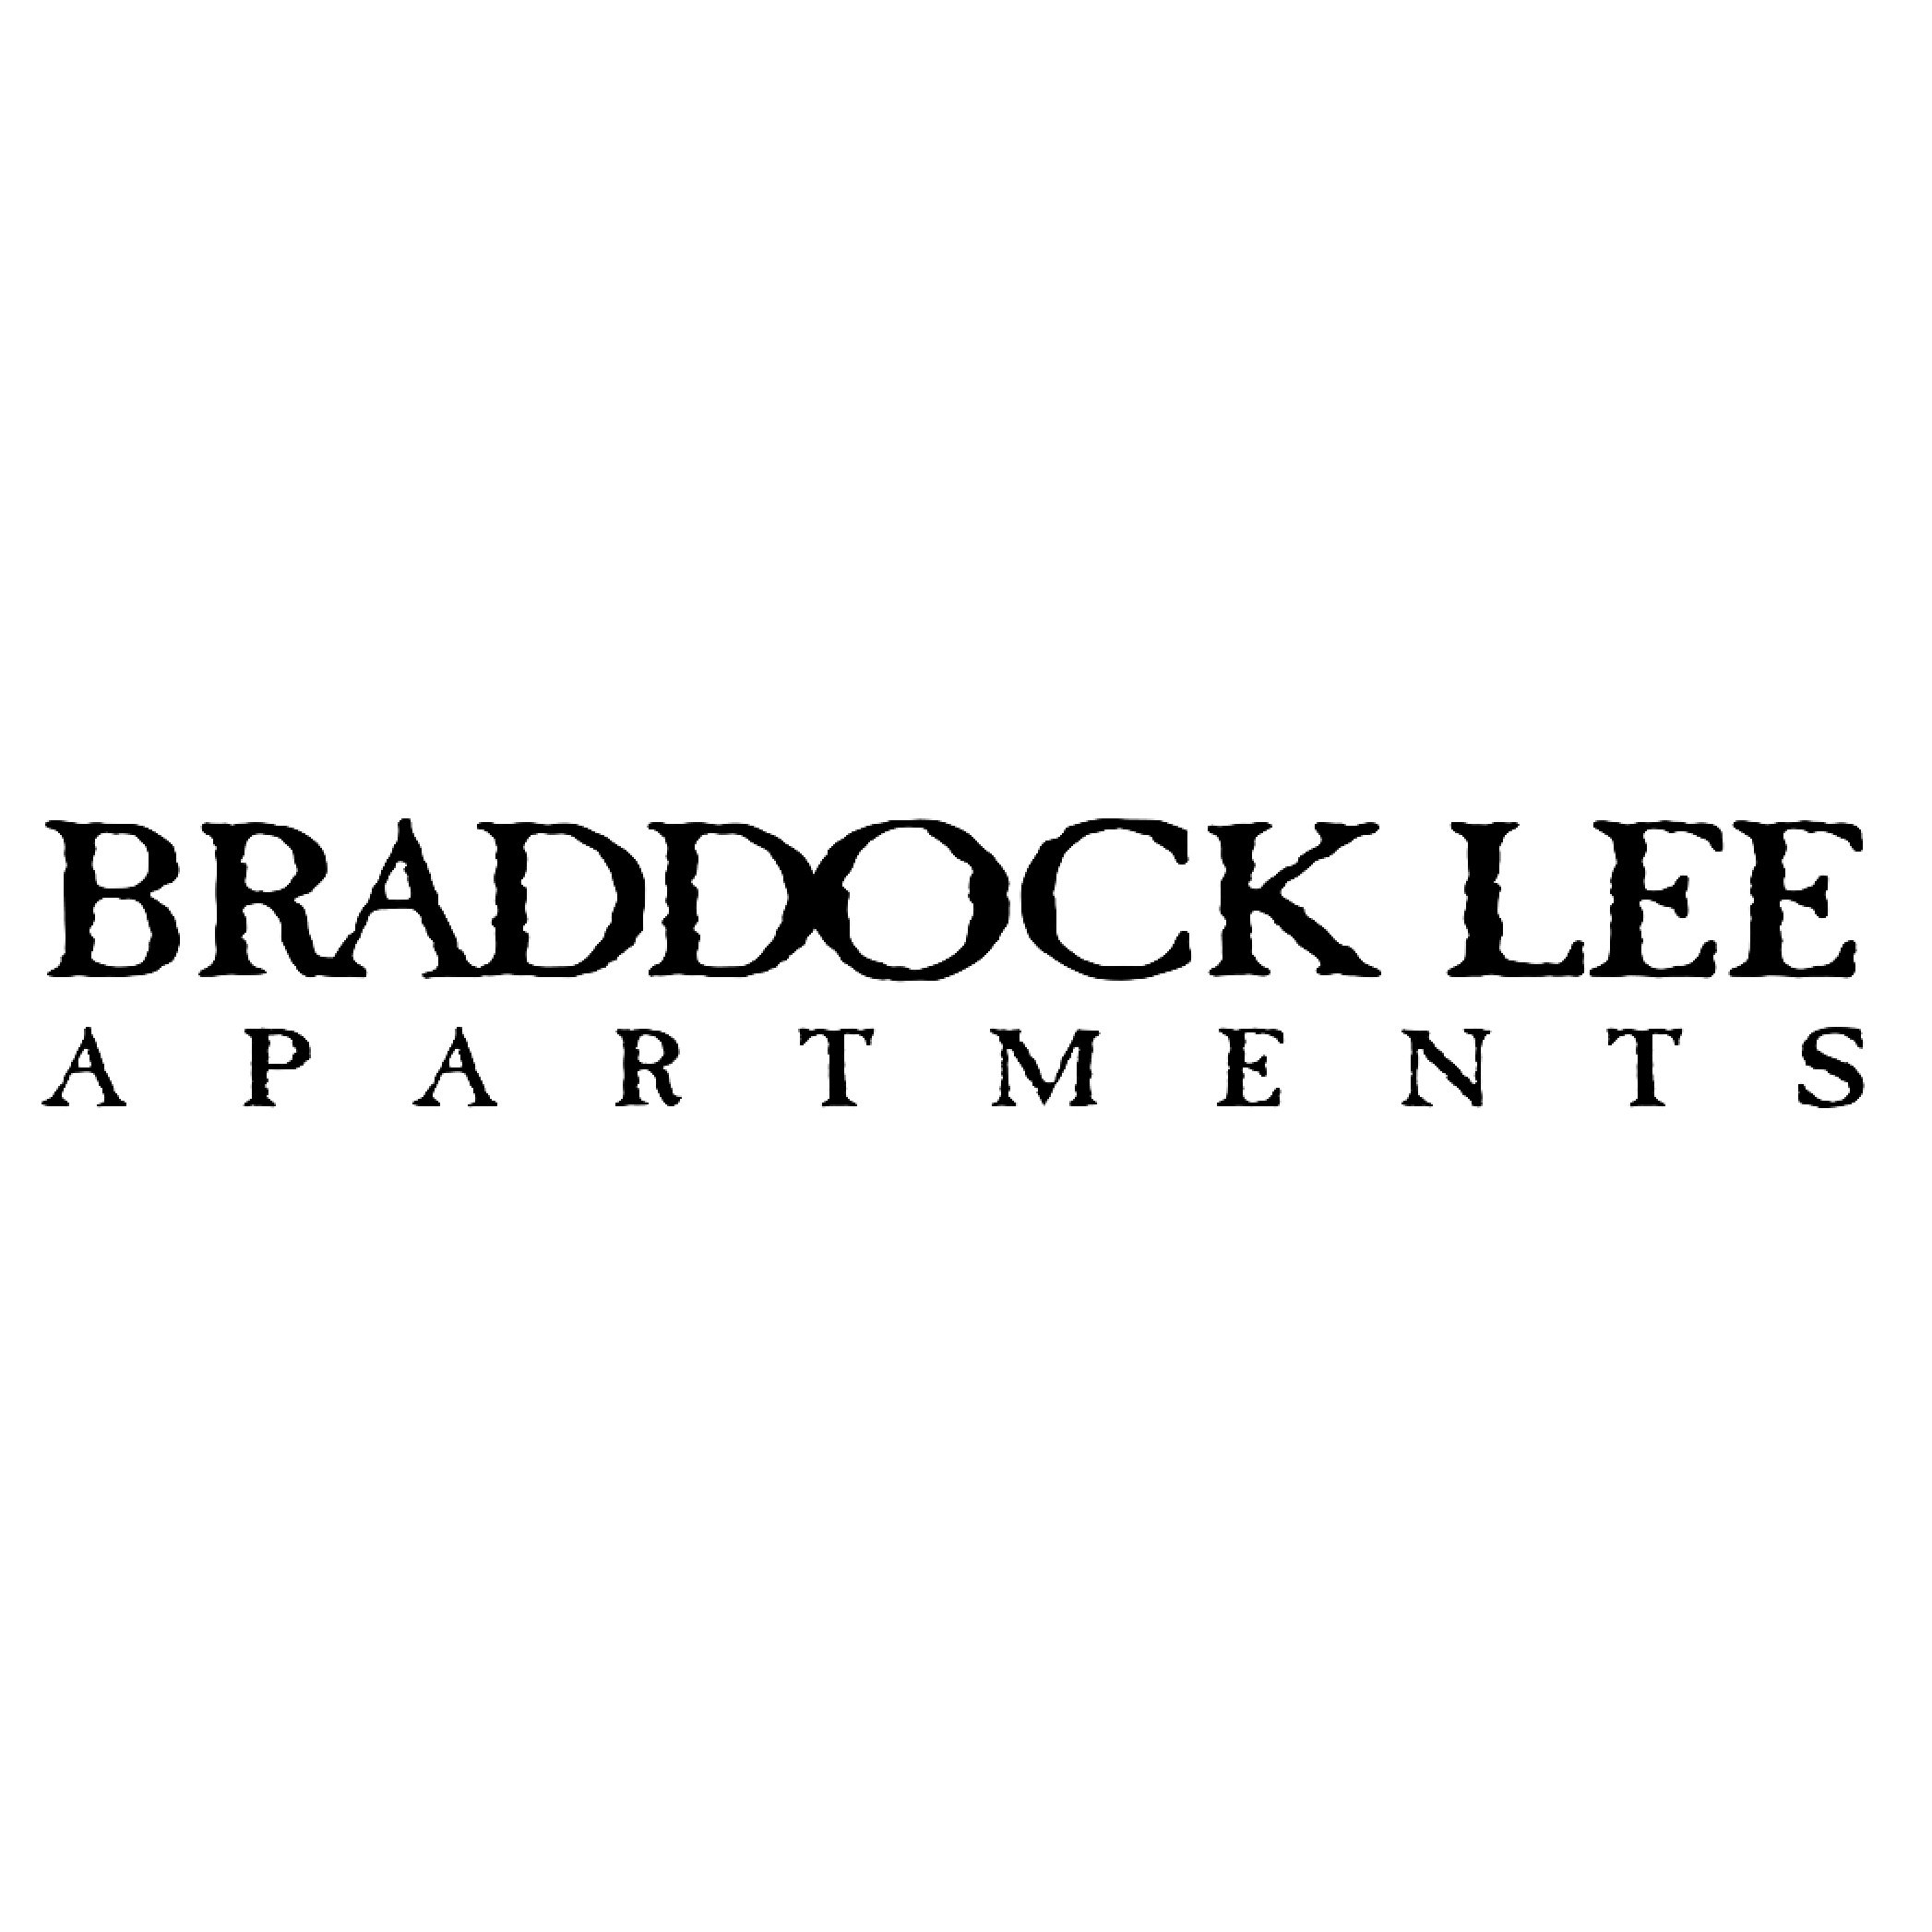 Braddock Lee Apartments image 12